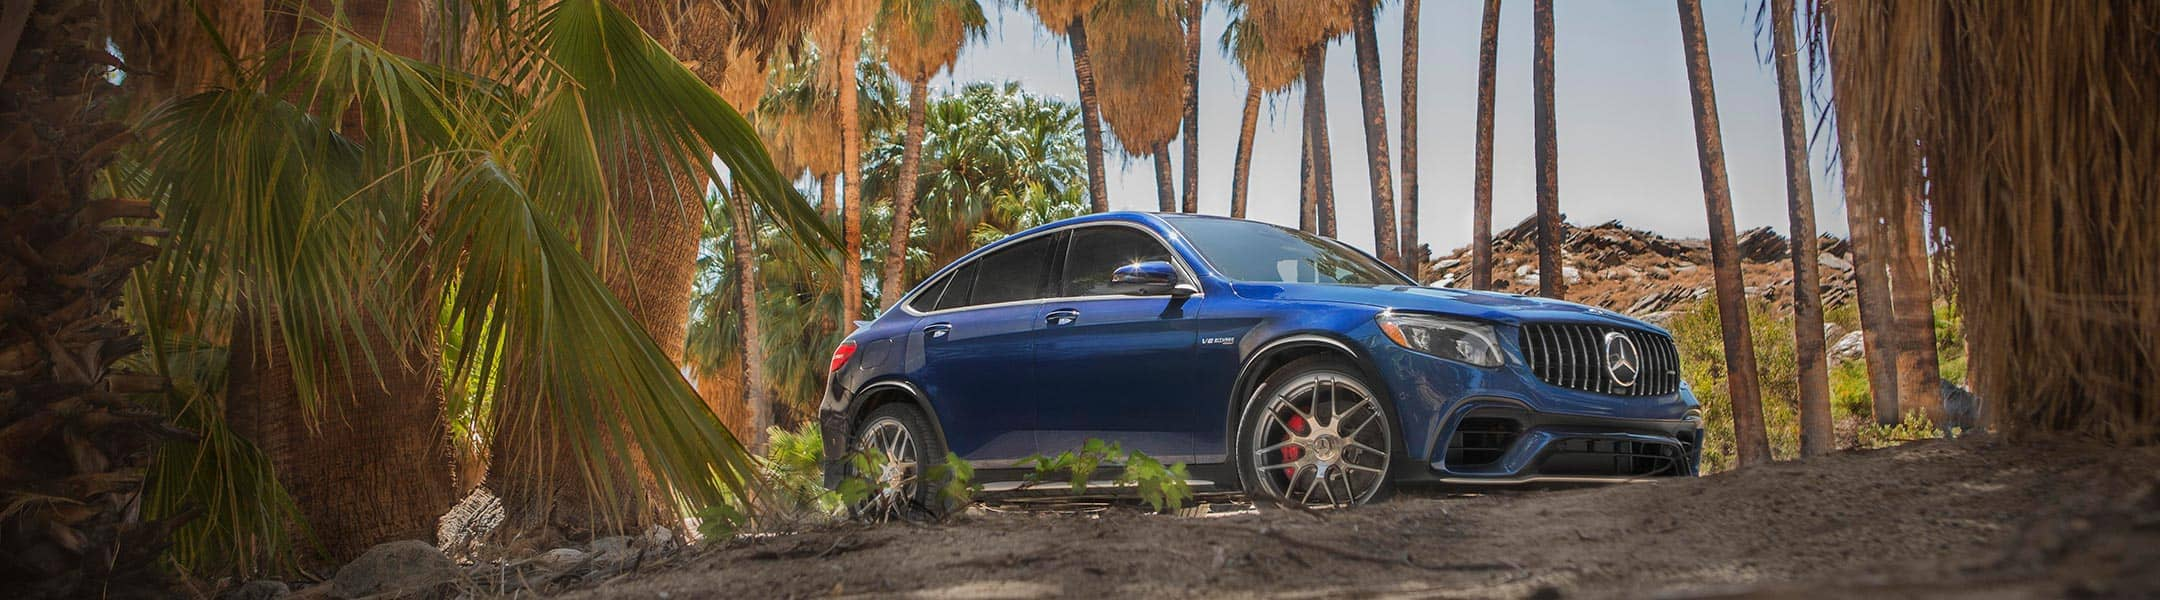 A blue Mercedes-Benz SUV drives through the backroads in a tropical setting.